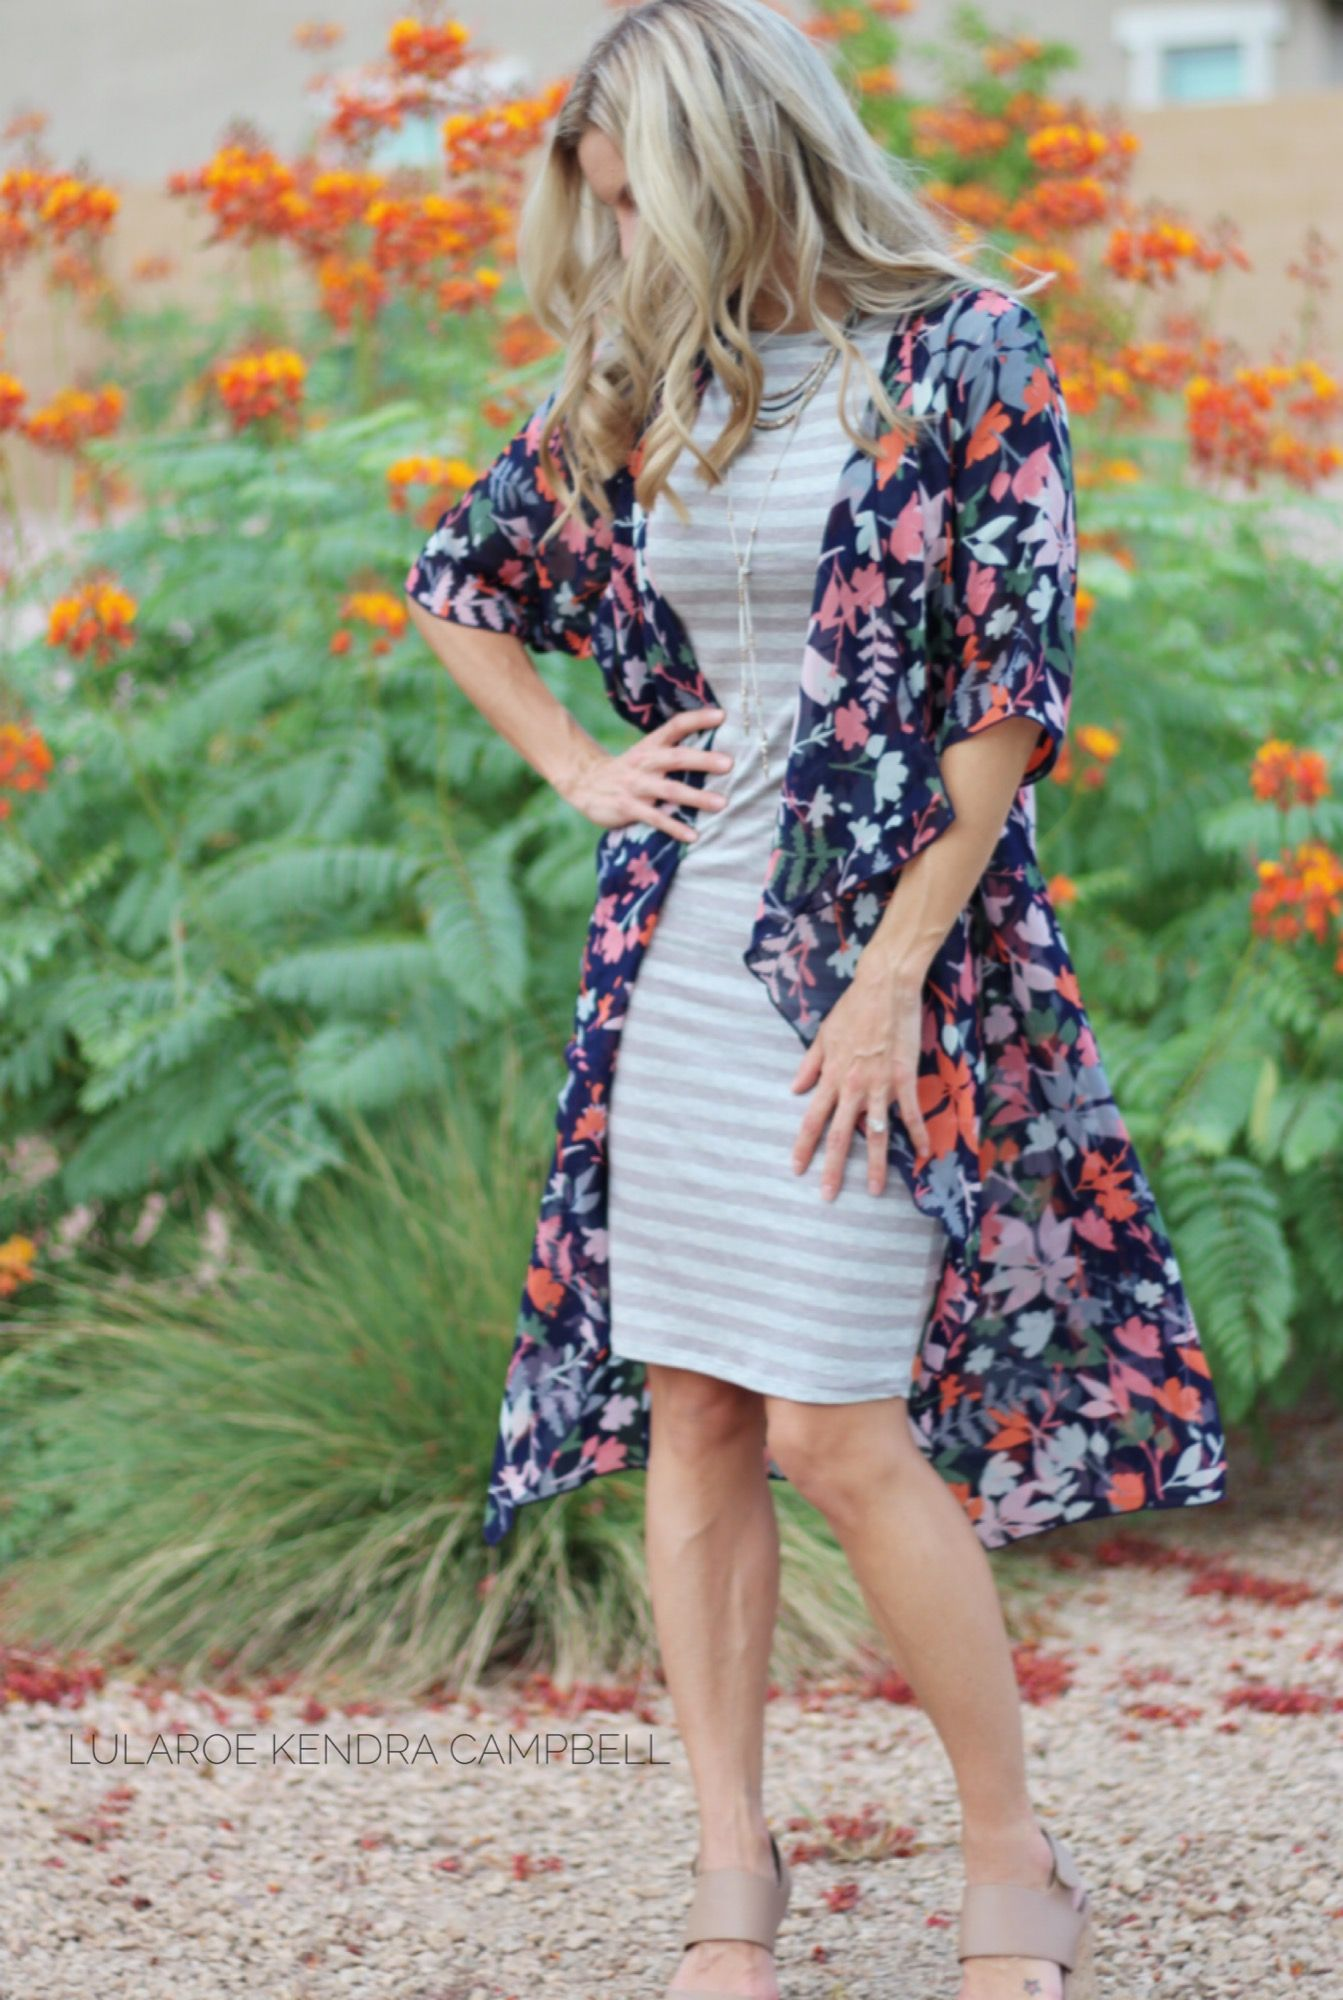 b04239167f7 Outfit details  LuLaRoe Julia dress and Shirley kimono. Click for more style  inspiration and to shop LuLaRoe!